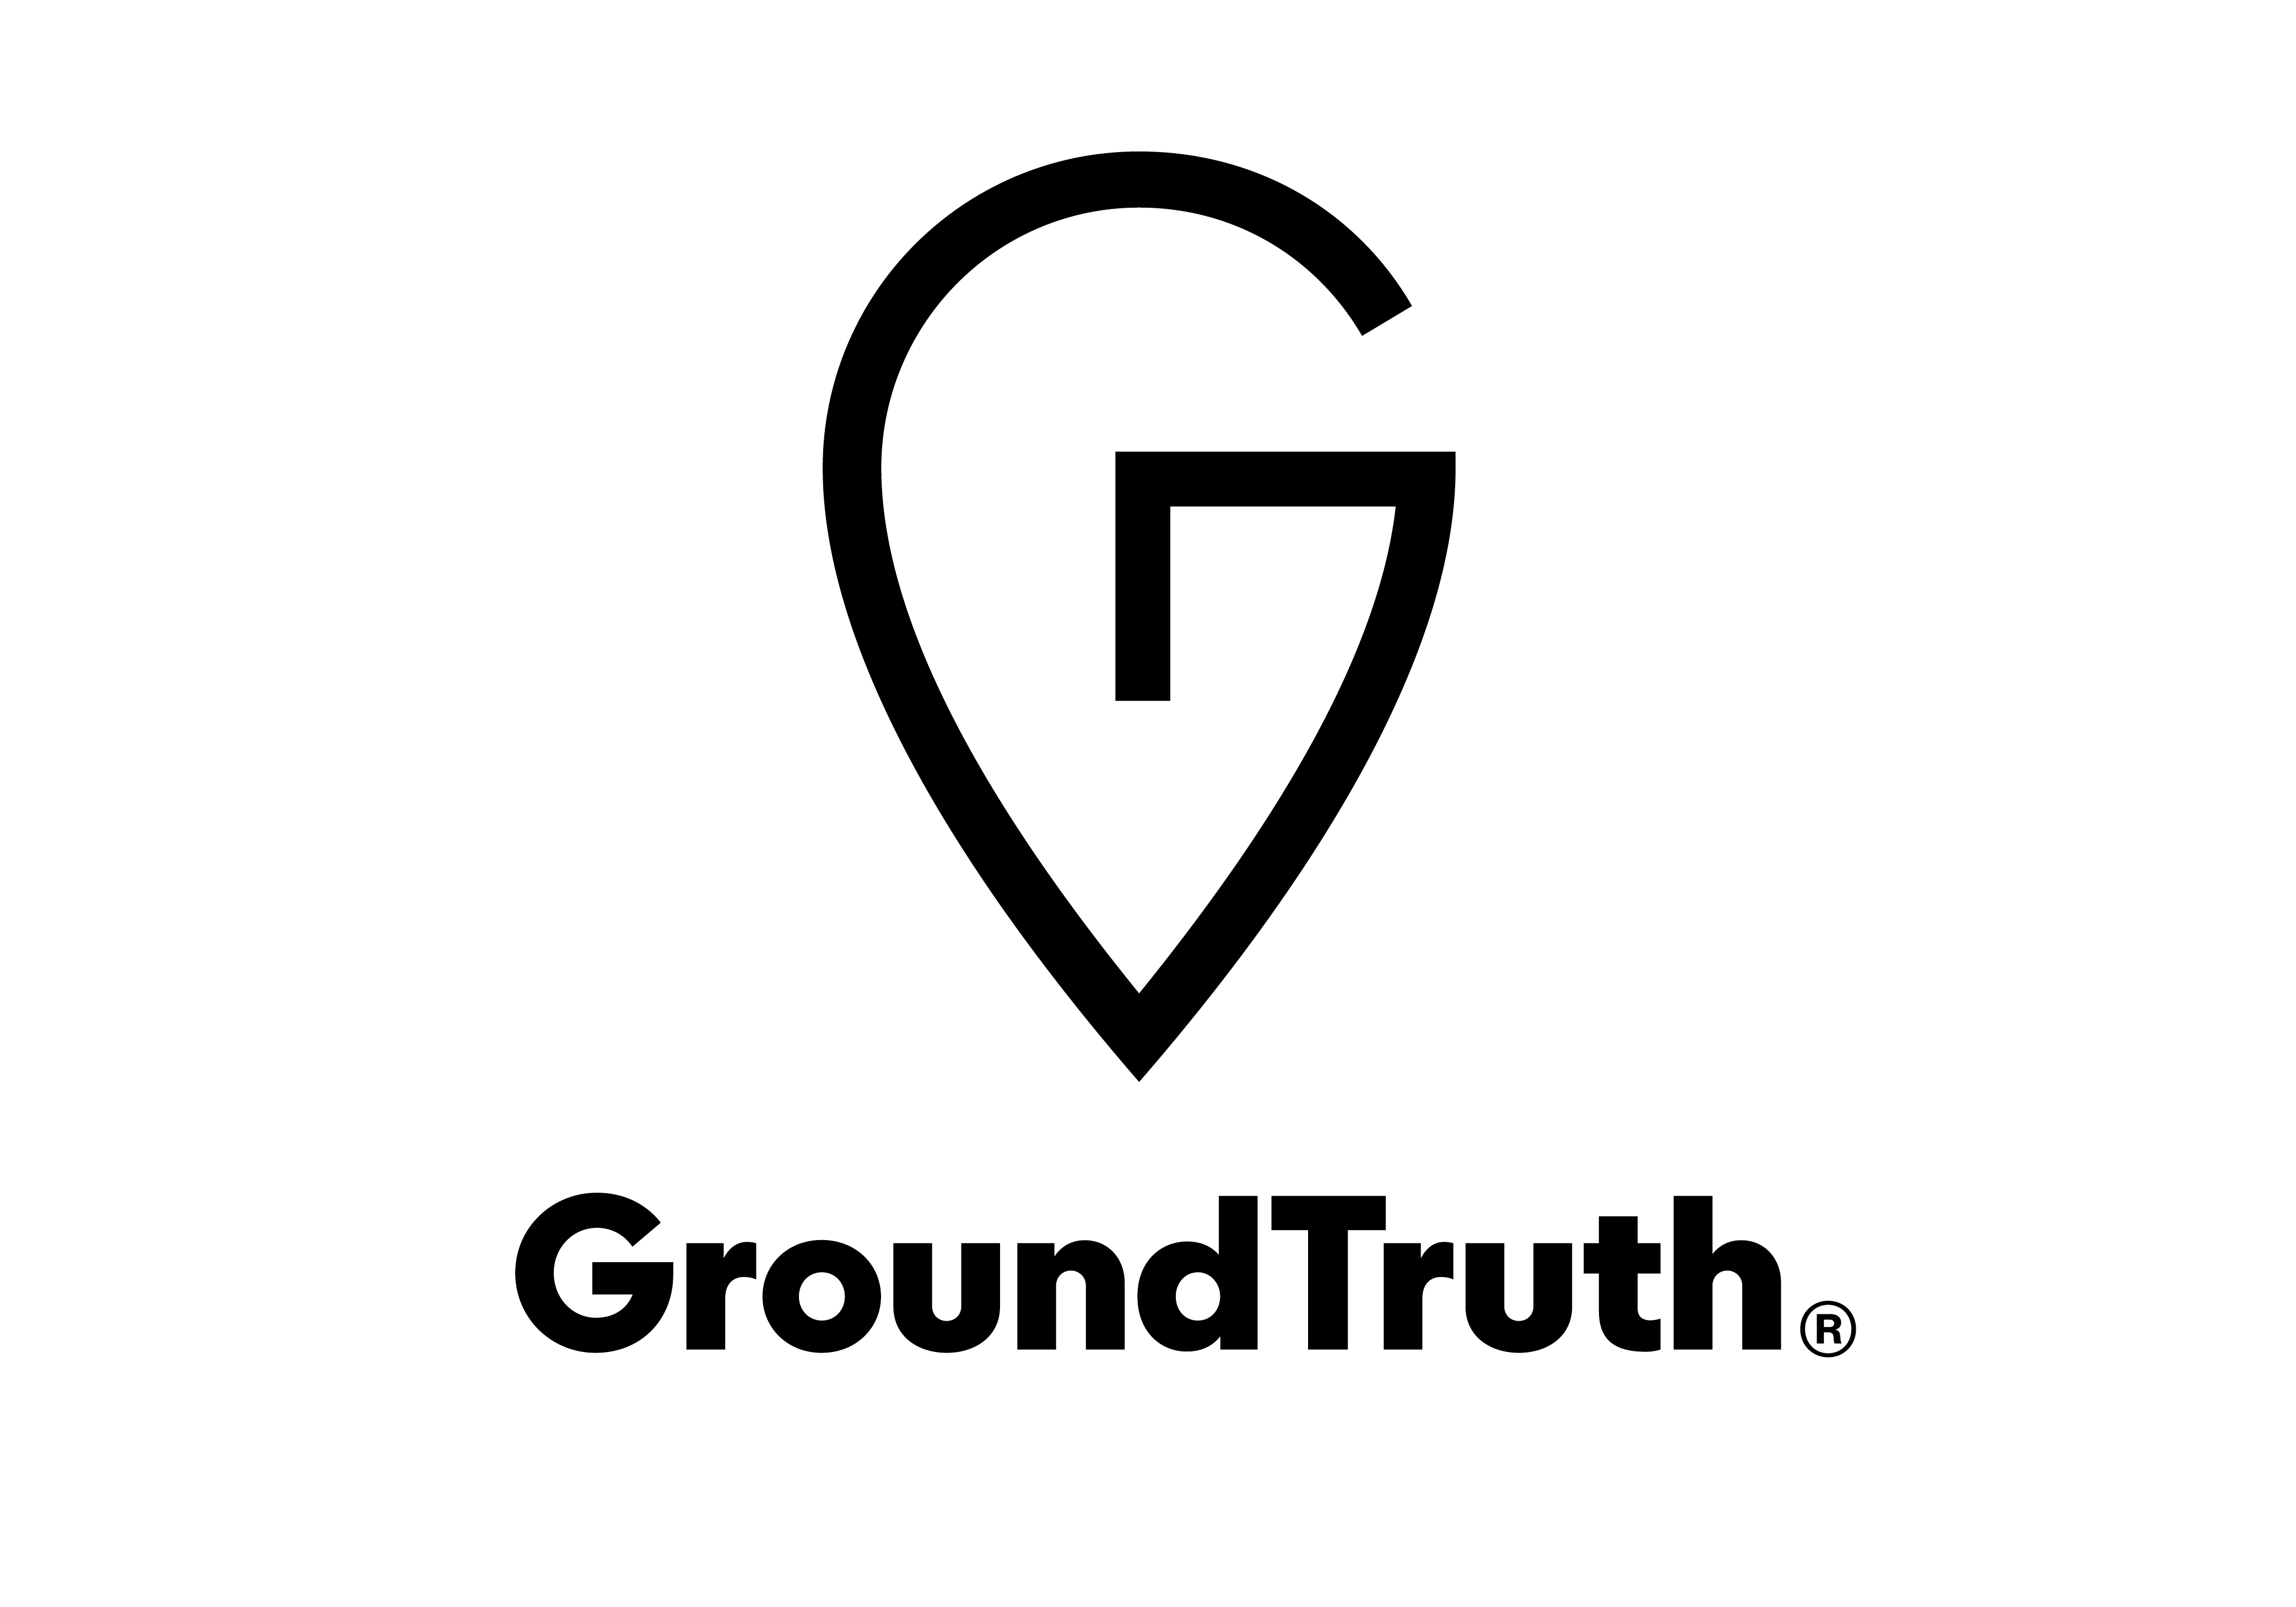 GroundTruth, formerly xAd, expands beyond media to unlock the full potential and value in its data | www.groundtruth.com